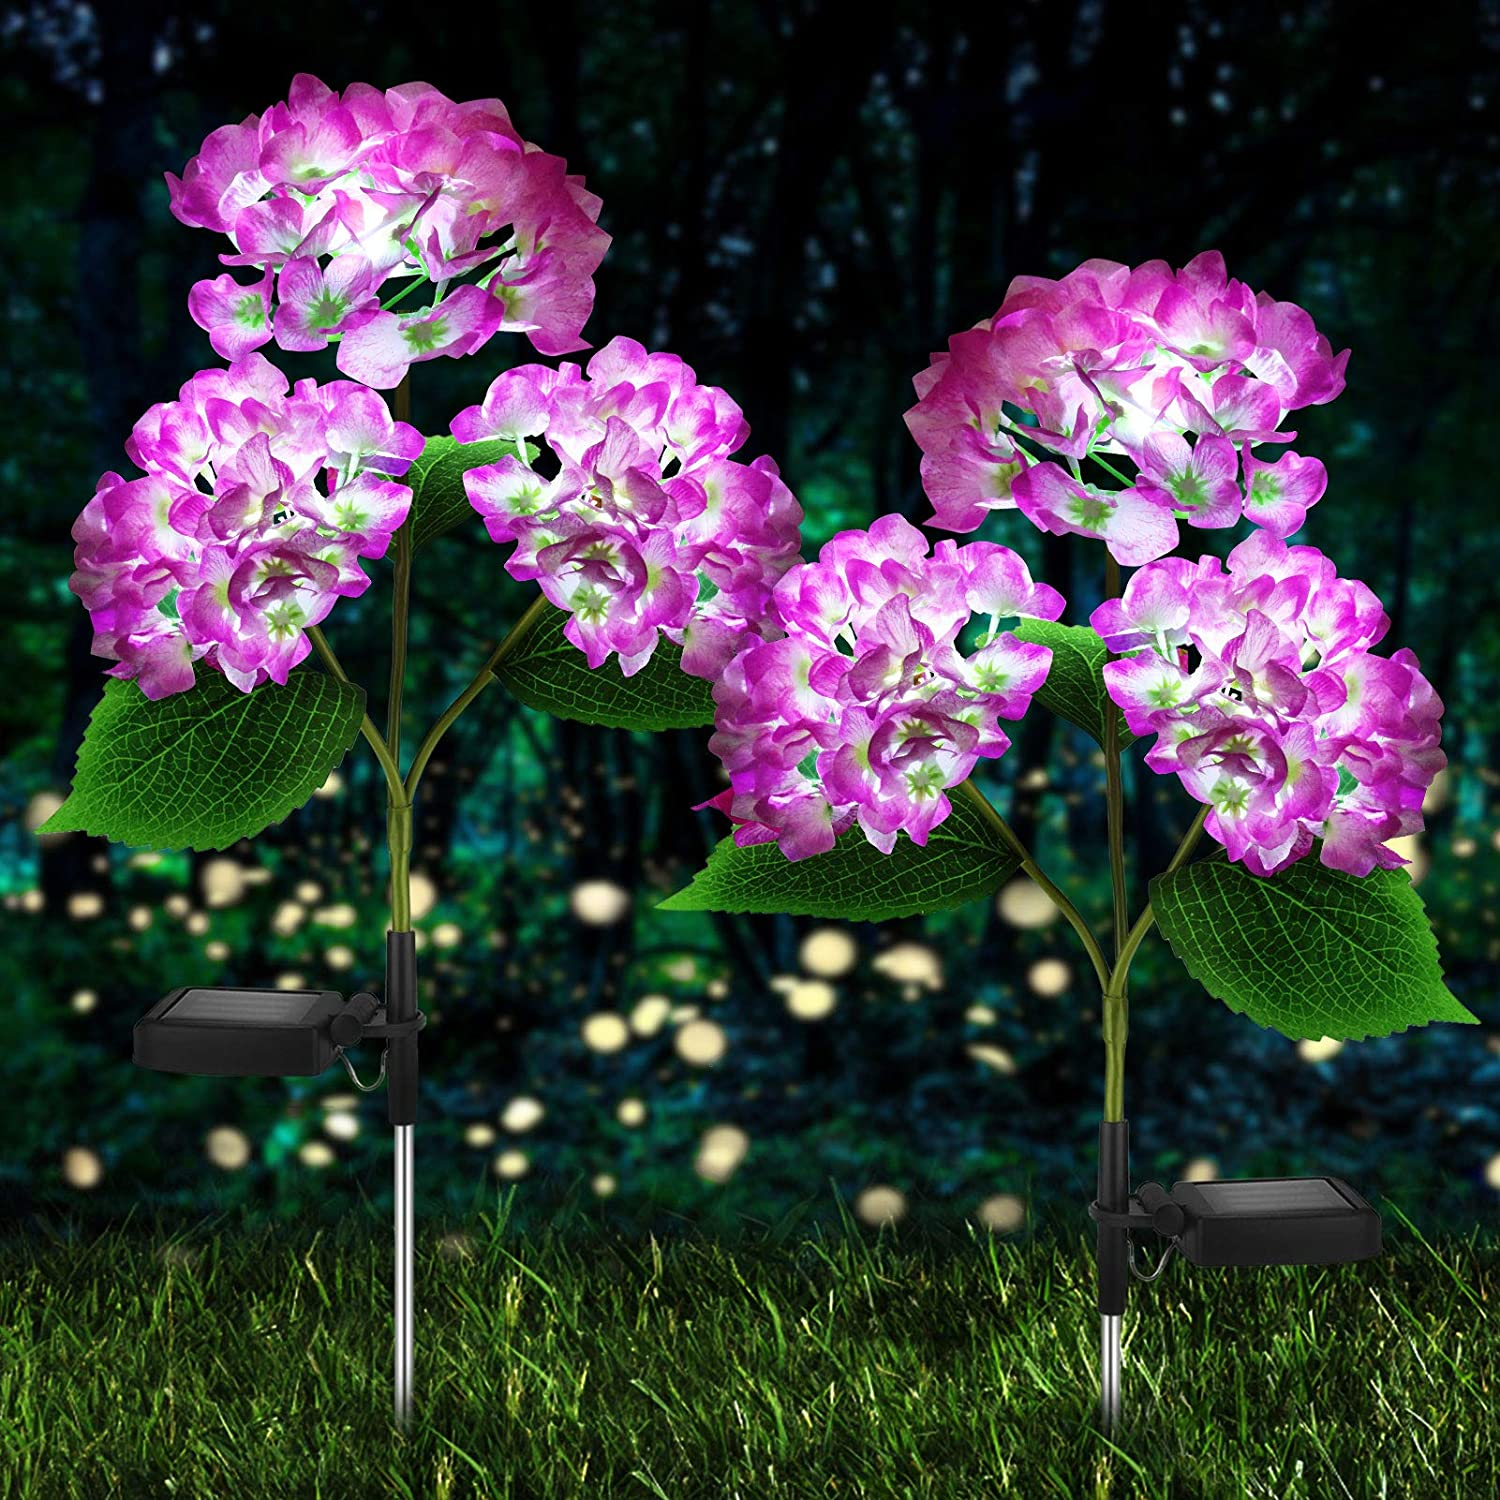 Solar Lights Outdoor Decorative - 2 Pack Hydrangea Solar Garden Stake Lights Waterproof and Realistic LED Flowers Powered Outdoor In-Ground Lights for Garden Lawn Patio Backyard (Purple)